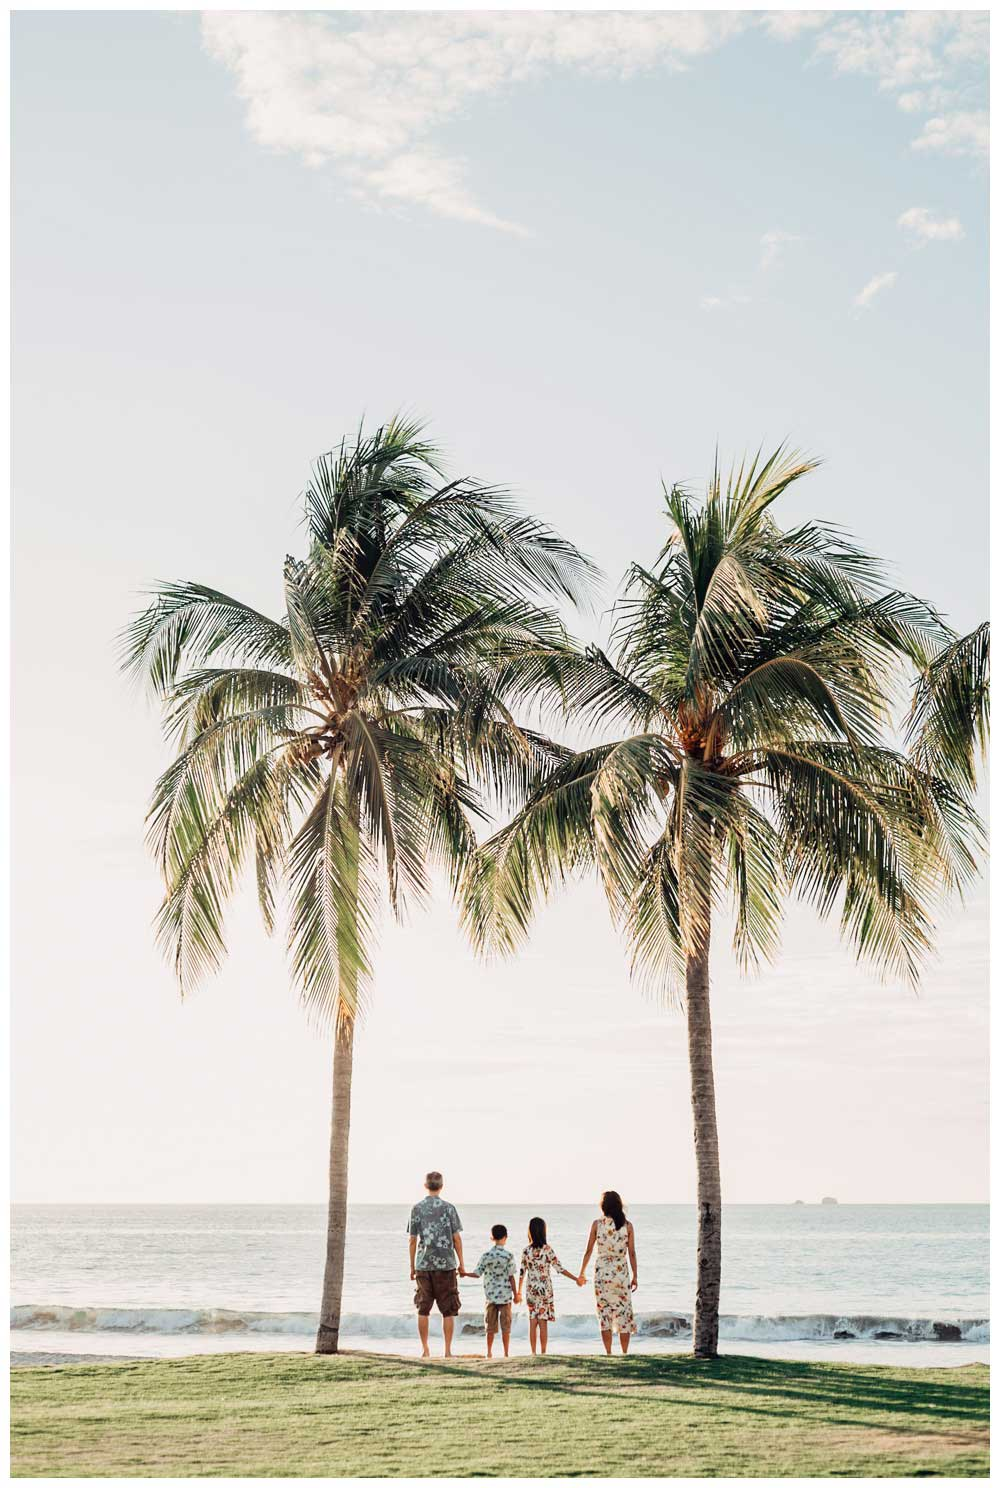 Family standing under palm trees during family photos in Playa Flamingo Costa Rica. Photographed by Kristen M. Brown, Samba to the Sea Photography.